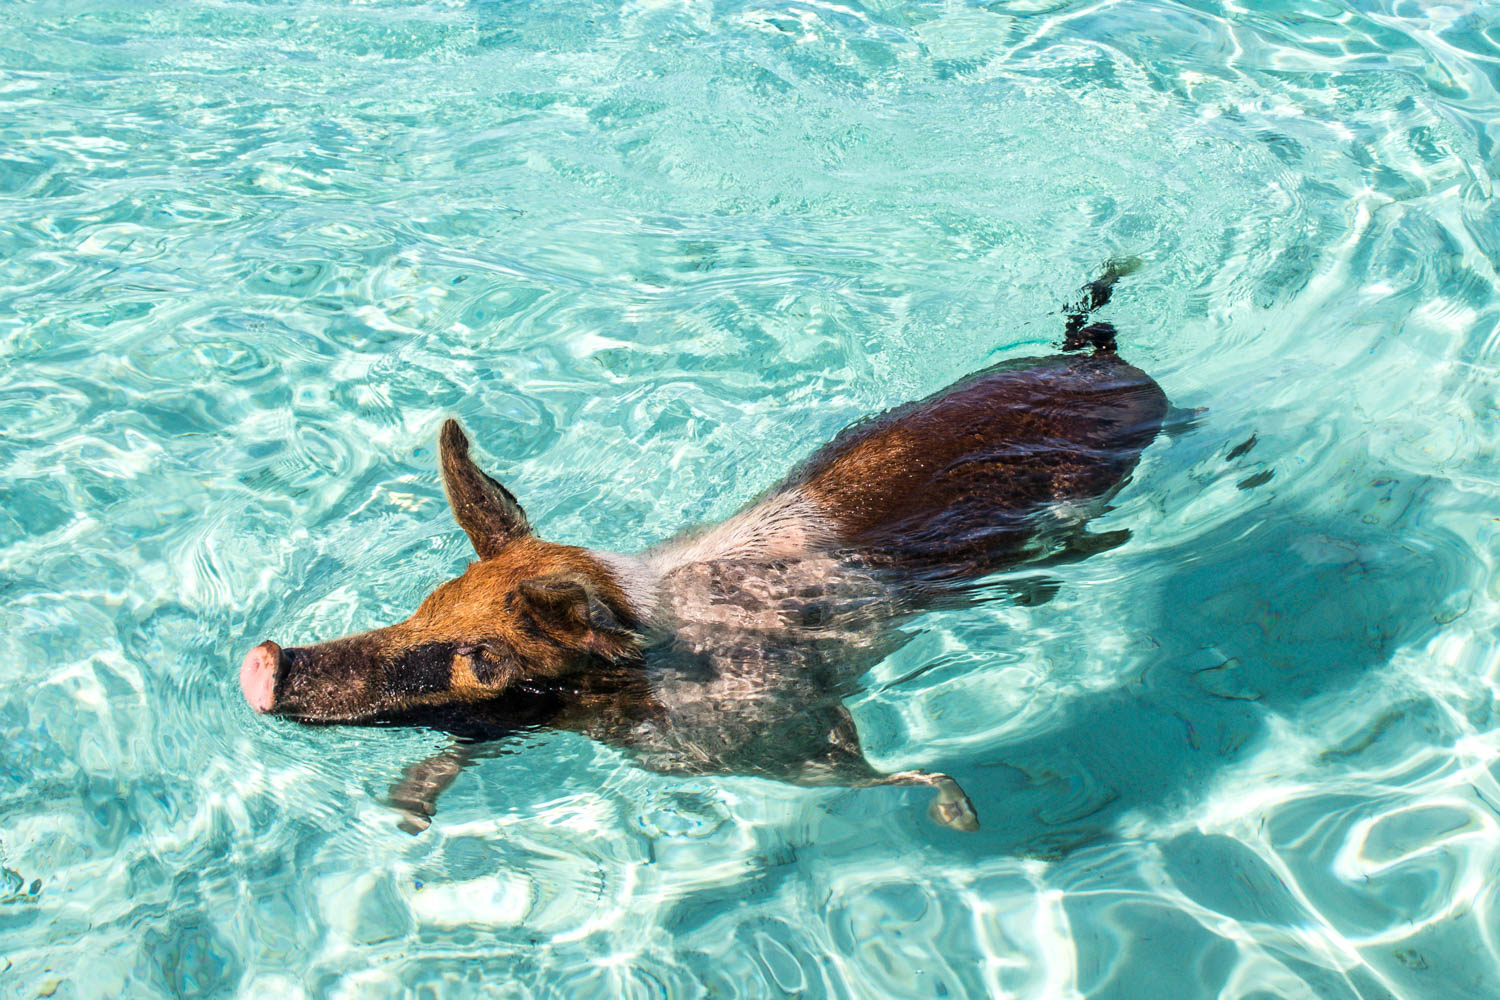 Head out on a Pig Island tour today! Exuma pig tour from Nassau will last approximately 7 hours.